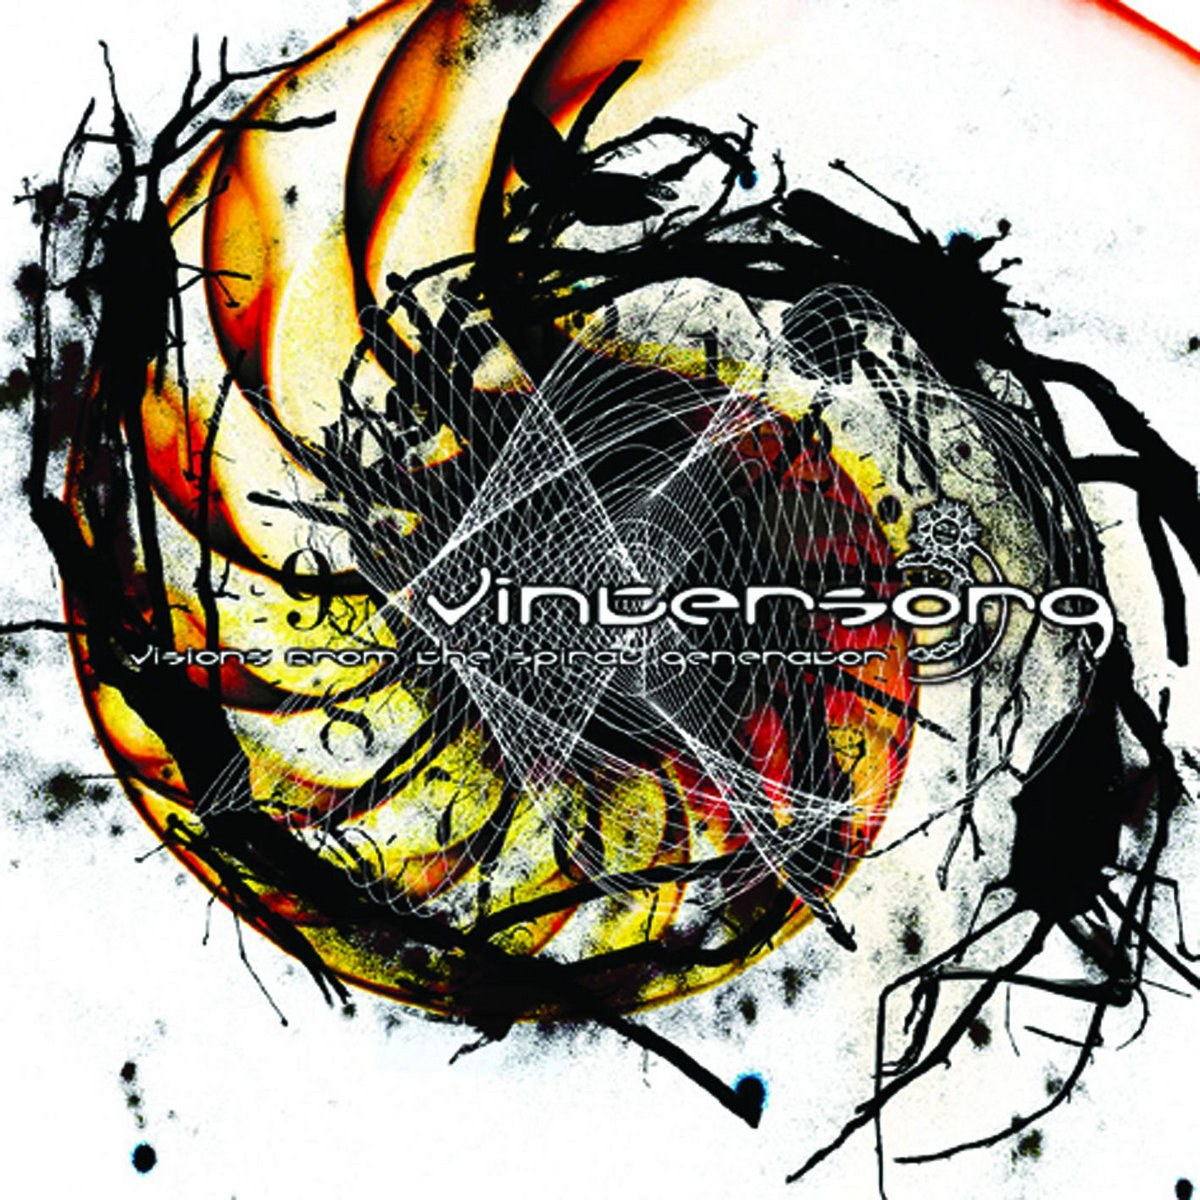 Review for Vintersorg - Visions from the Spiral Generator